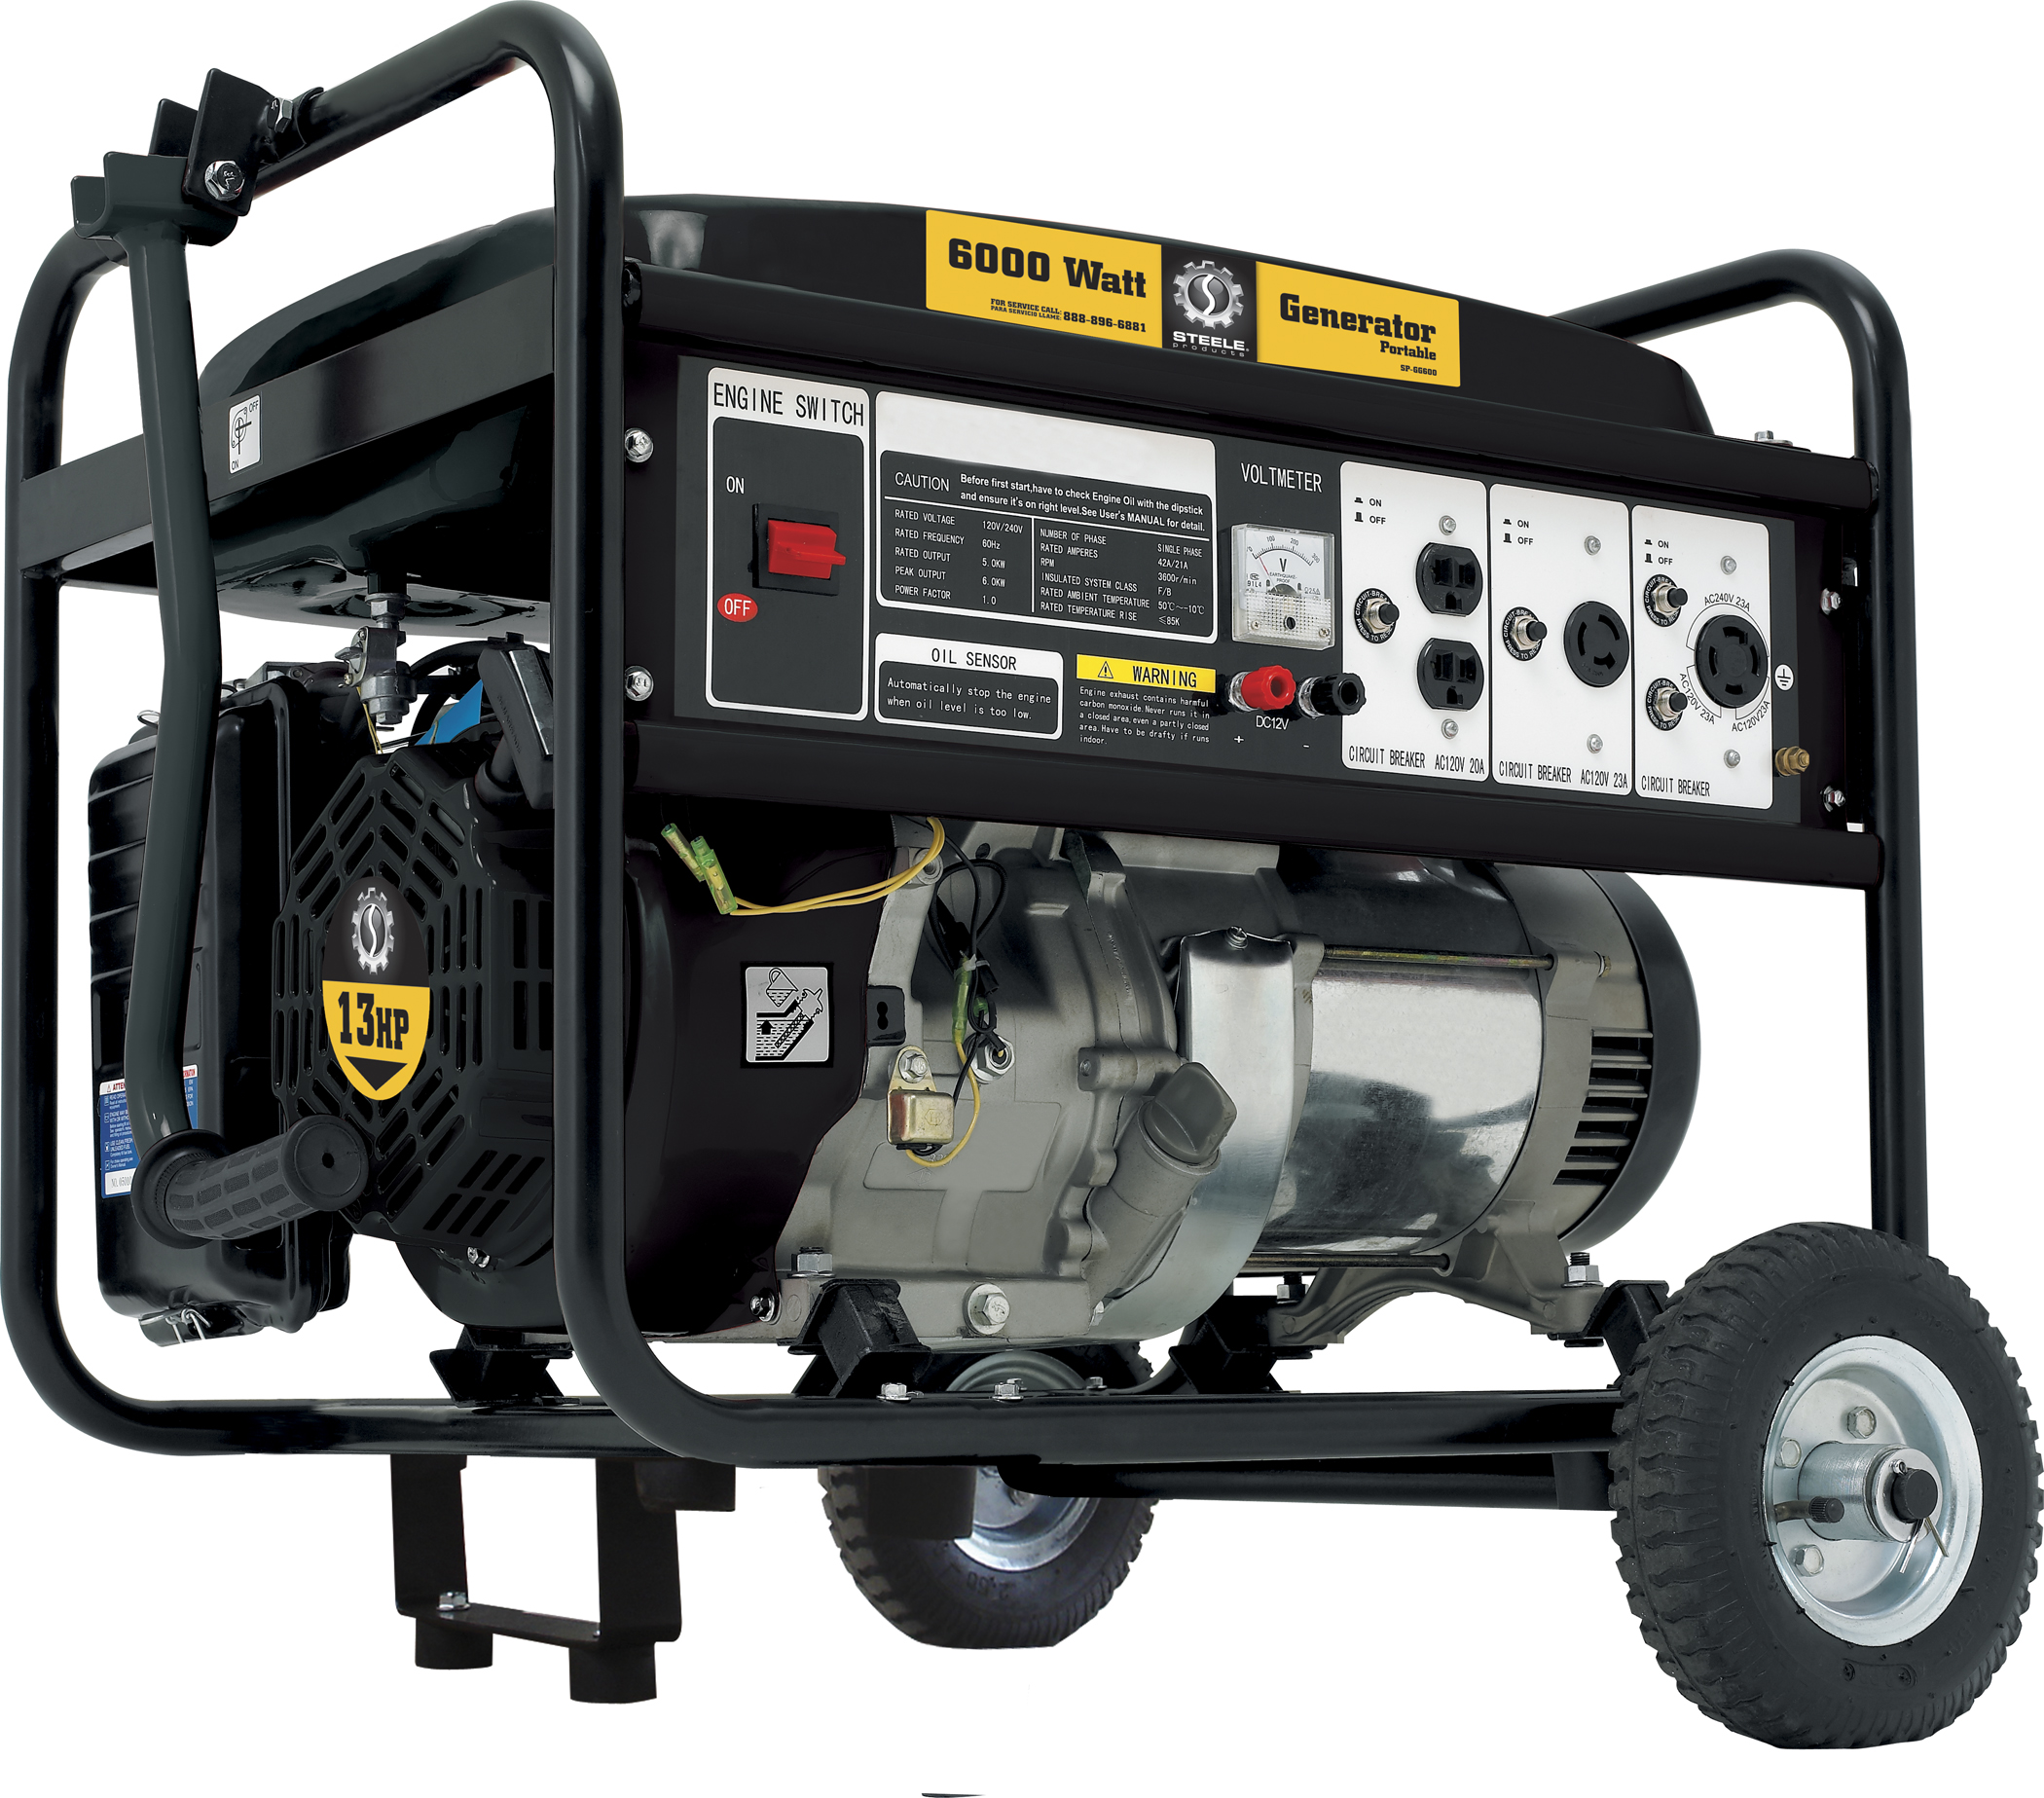 Steele Products Portable Generator Sp Gg600n 6000 Watt Gas Also 220 Volt Welder To Adapter On Cord Wiring